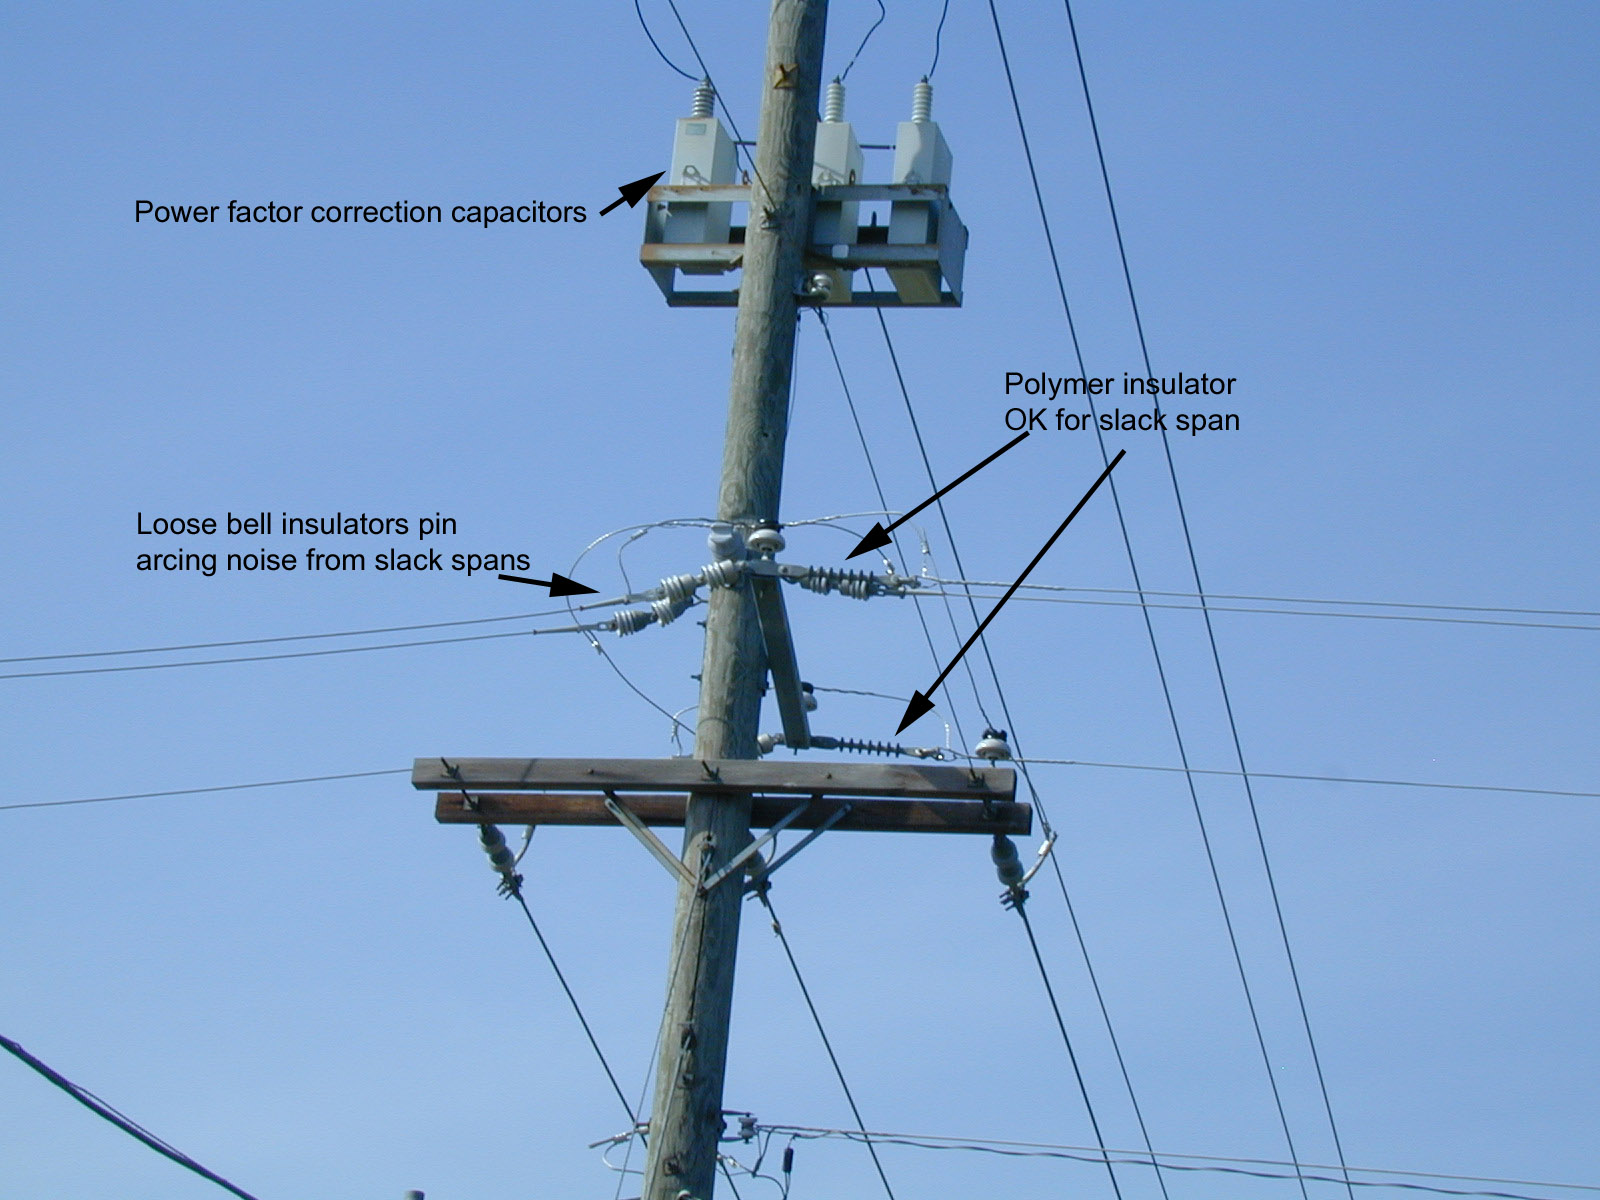 Types Of Electrical Poles : Diagram of electrical pole top transformer get